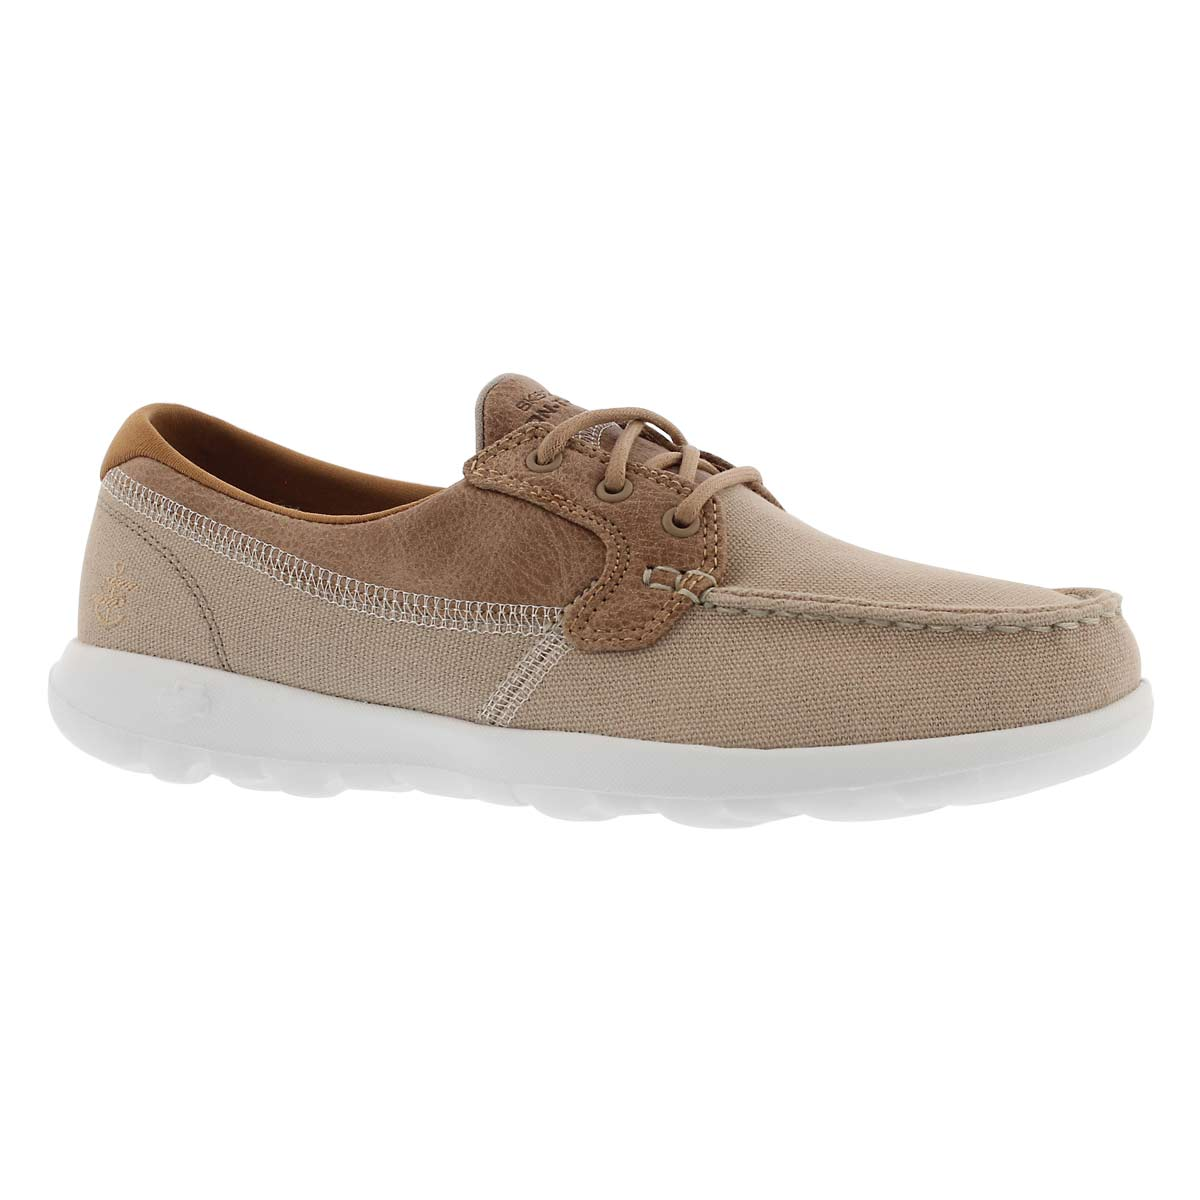 Lds GOwalk Lite Coral natural boat shoe